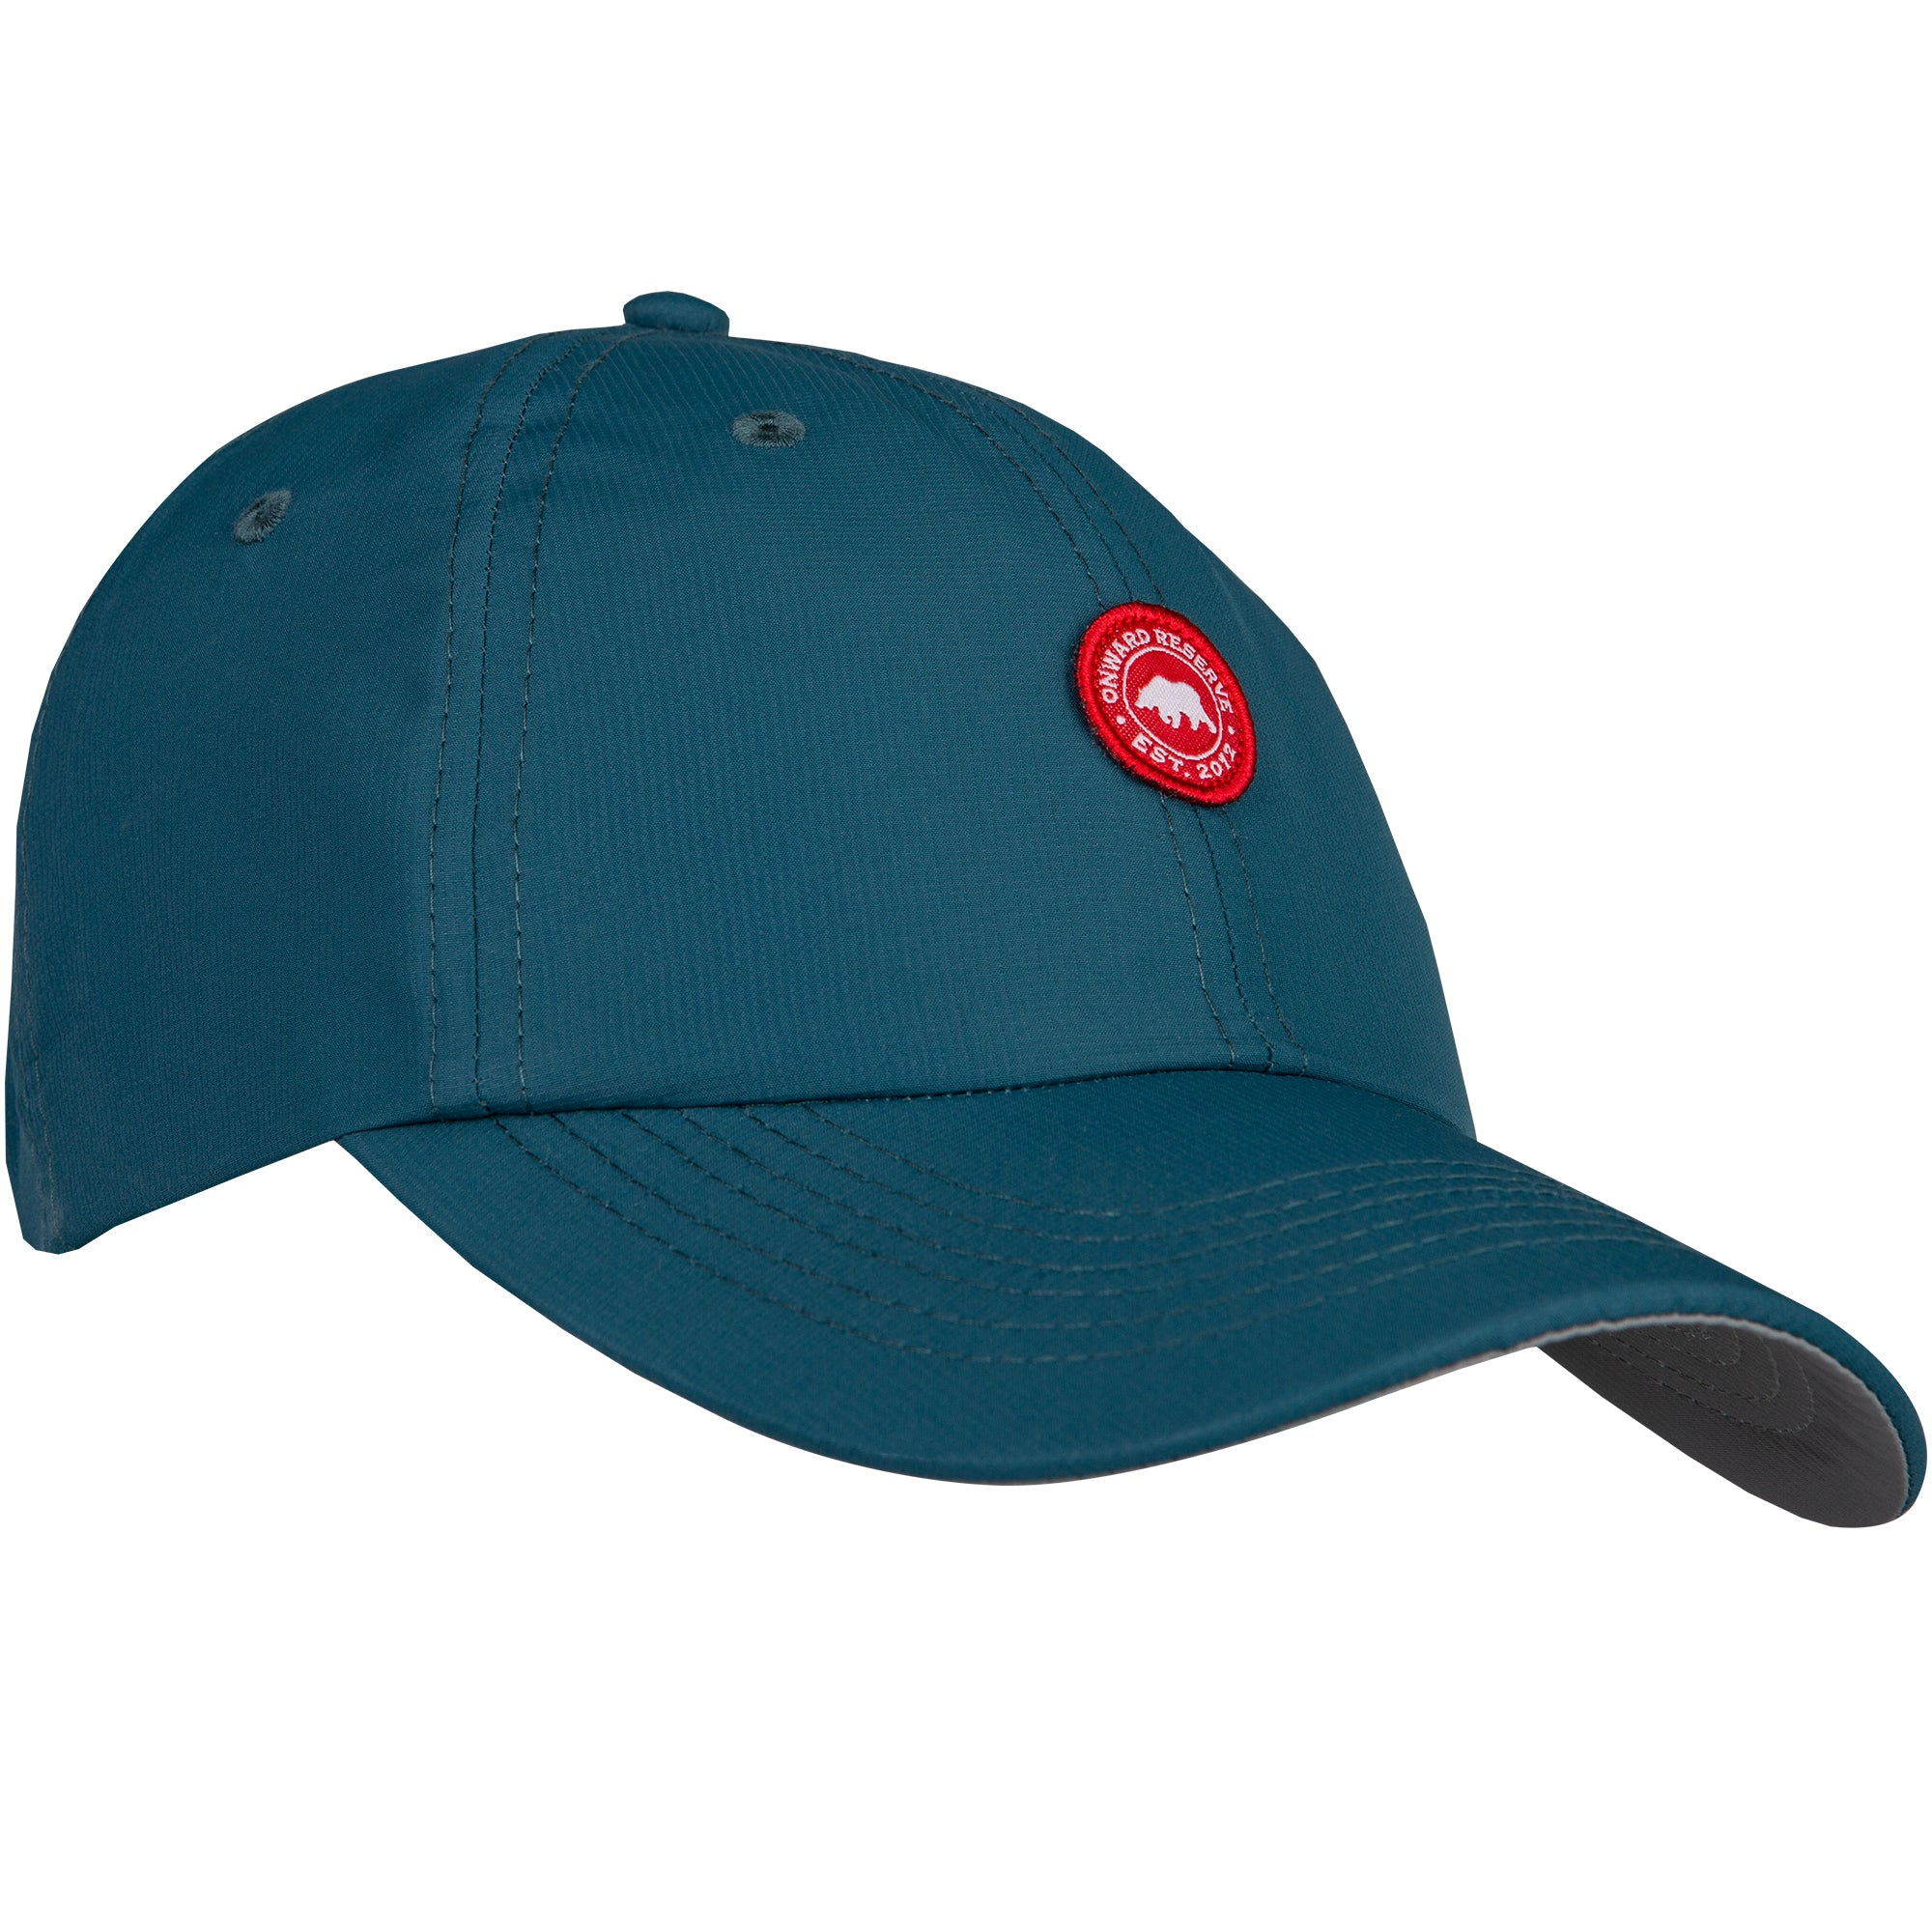 Club Performance Hat - OnwardReserve